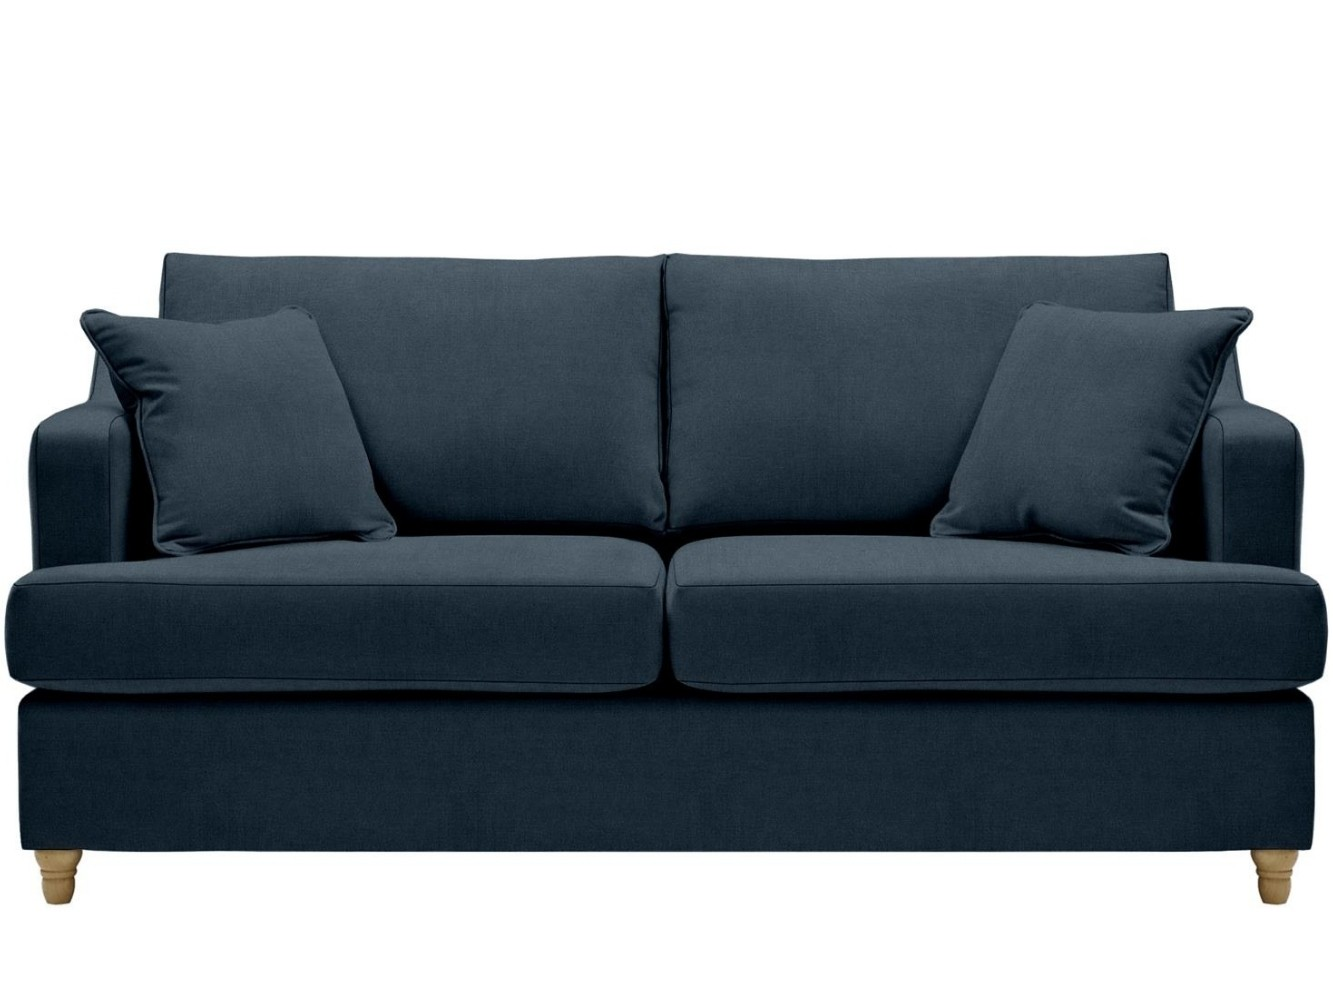 This is how I look in Washed Cotton Cambridge Blue (discontinued fabric) with reflex foam seat cushions